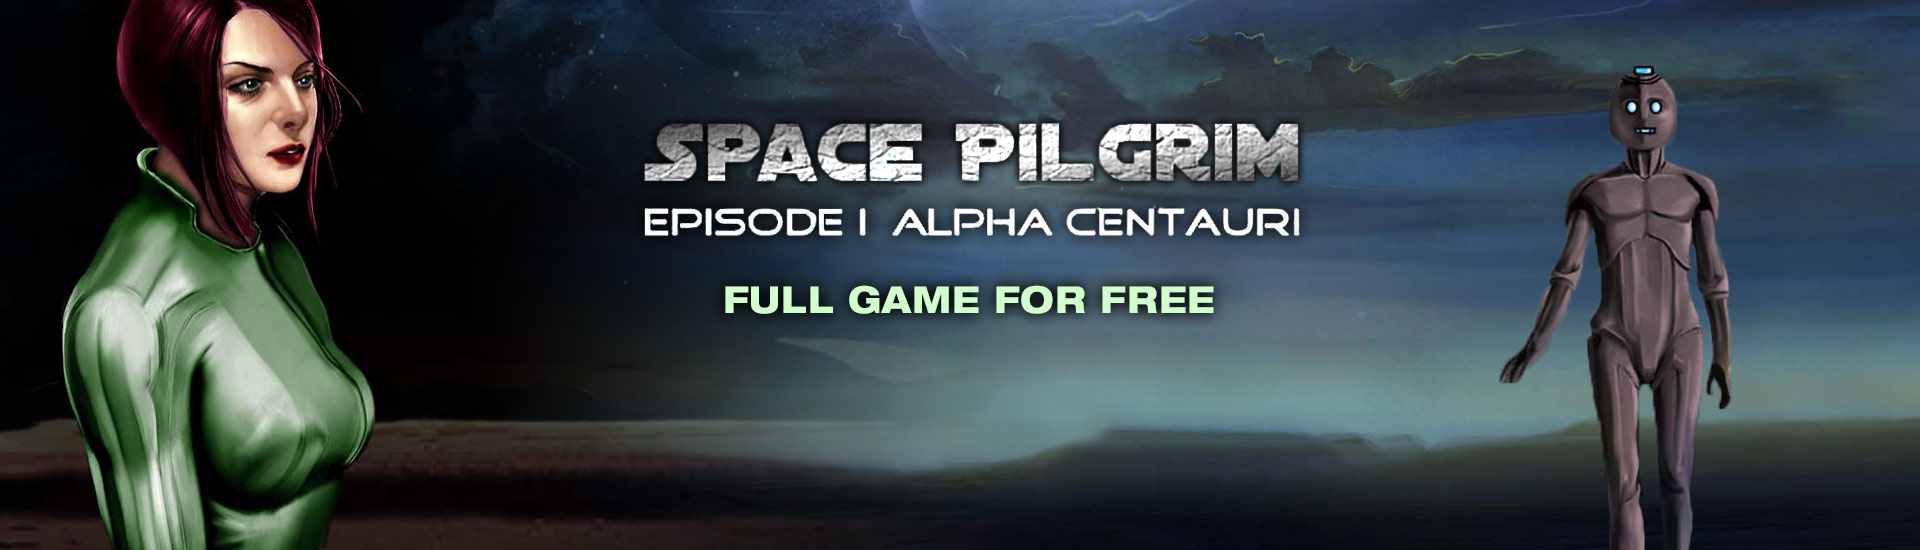 Space Pilgrim Episode I: Alpha Centauri cover